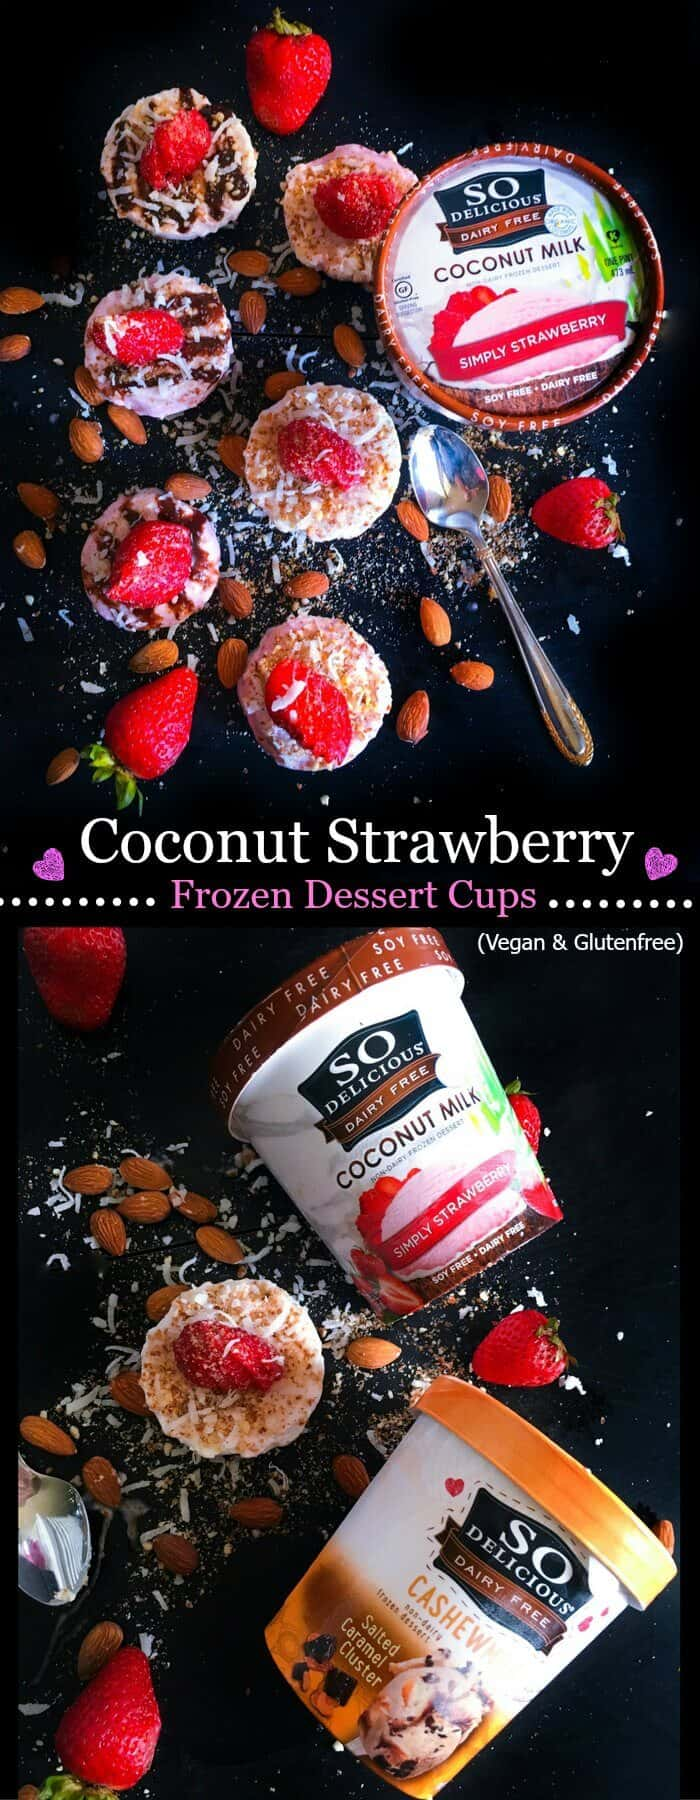 Coconut Strawberry Frozen Dessert Cups (V+GF) : #ad #DairyFree4All #cbias @walmart #vegan #glutenfree #dessert